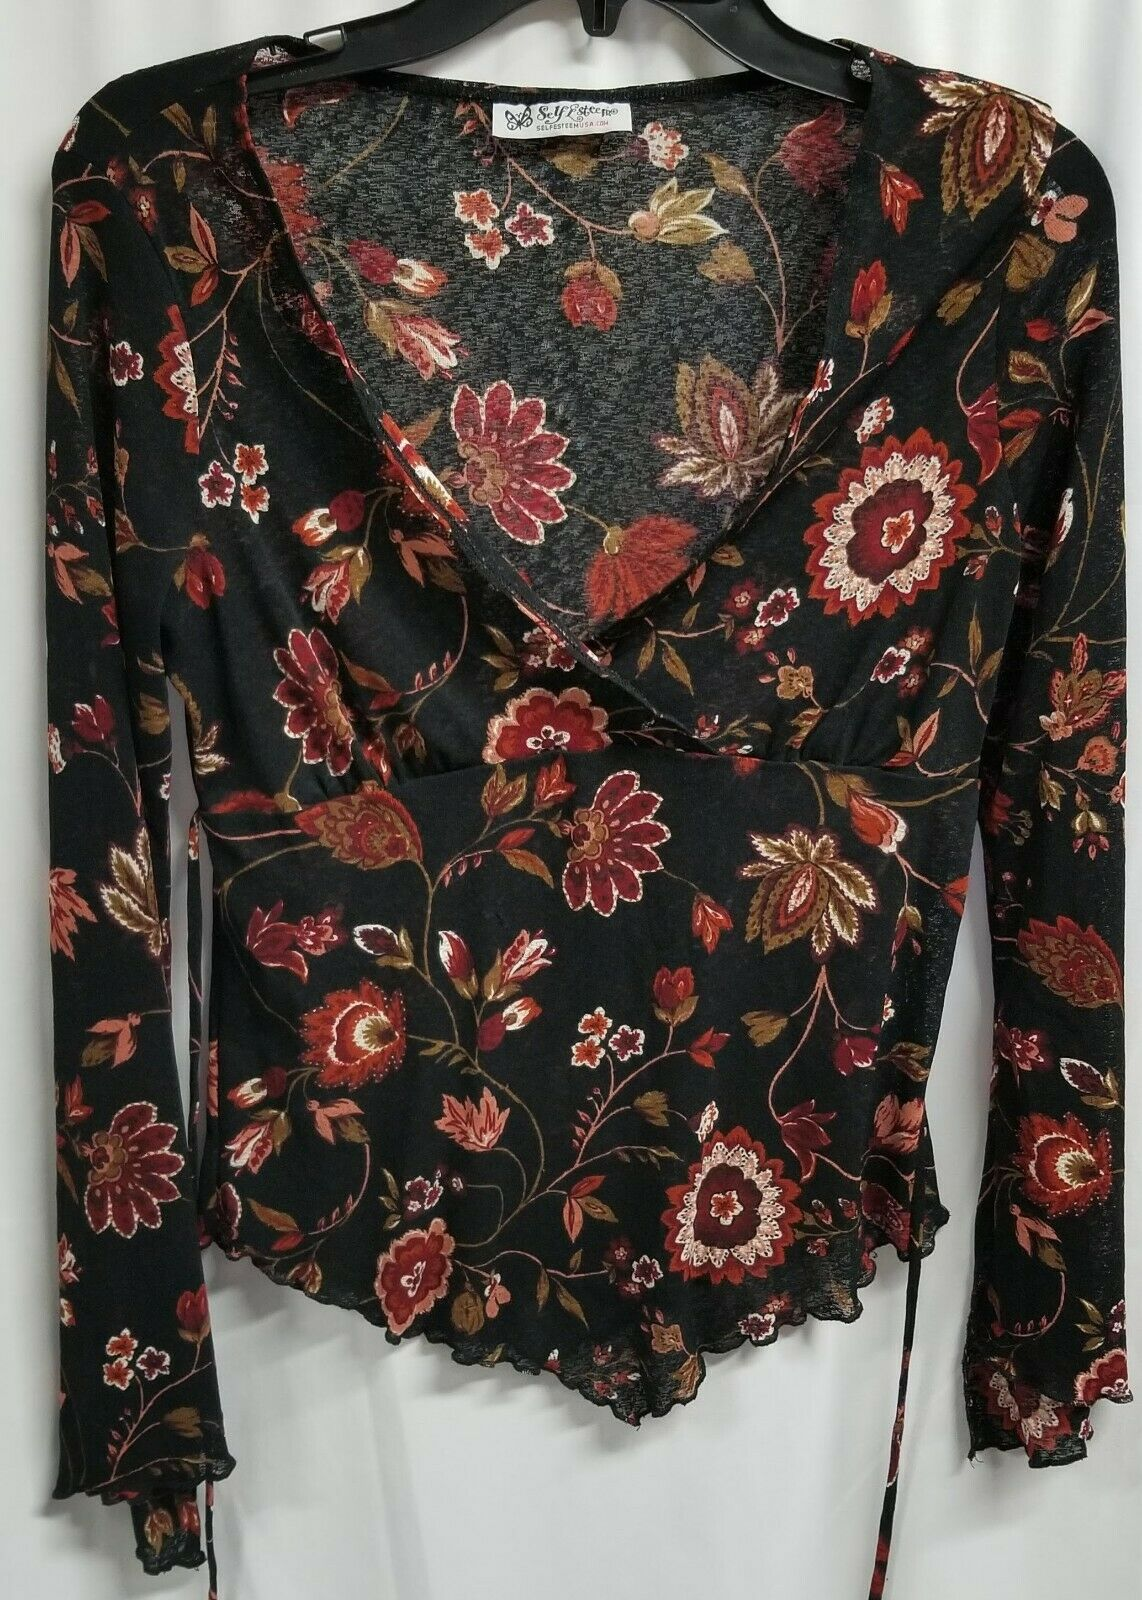 Self Esteem Long Sleeve Sheer Floral Top Size Est M 7